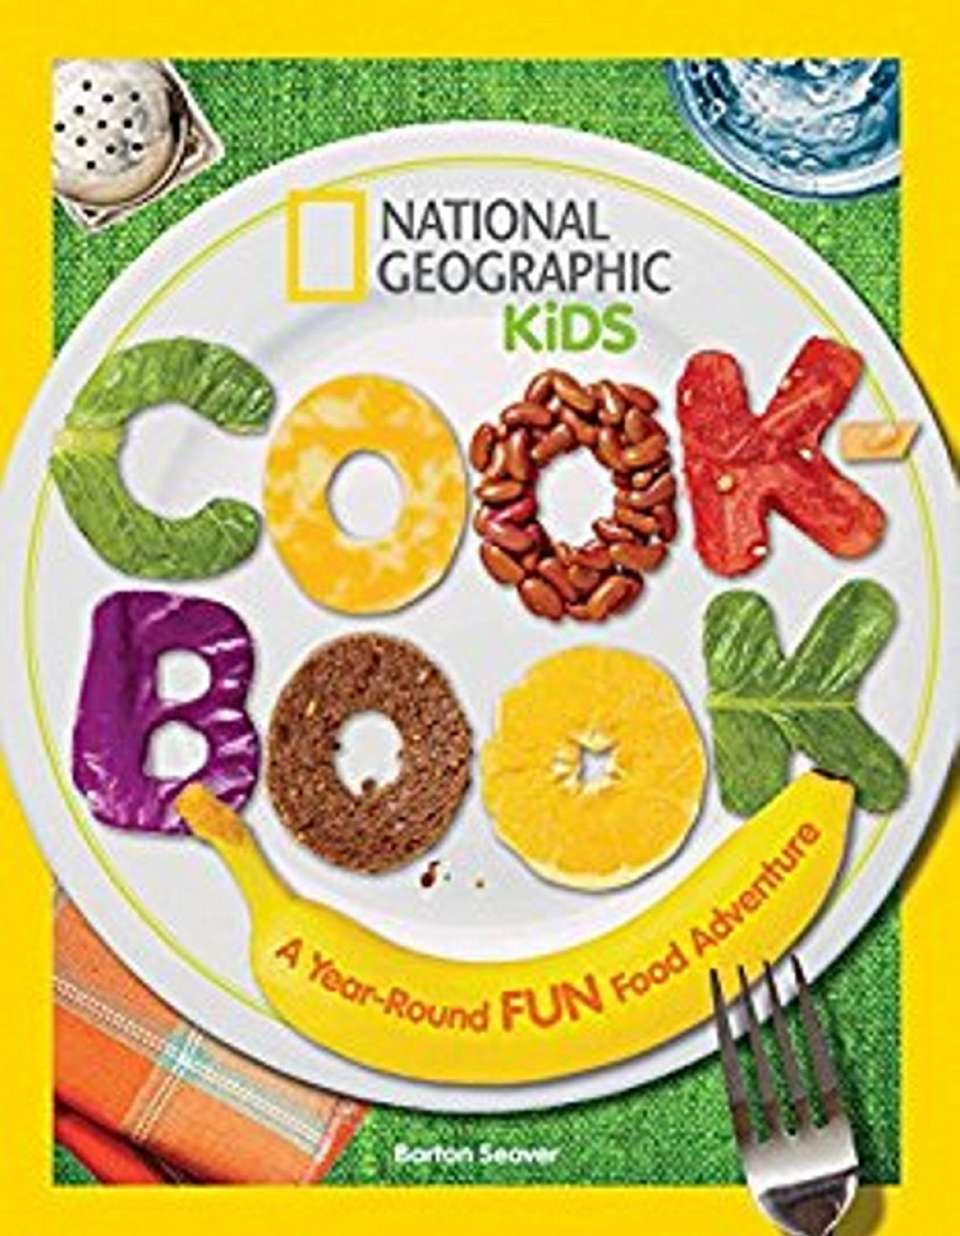 National Geographic Kids Cook-Book